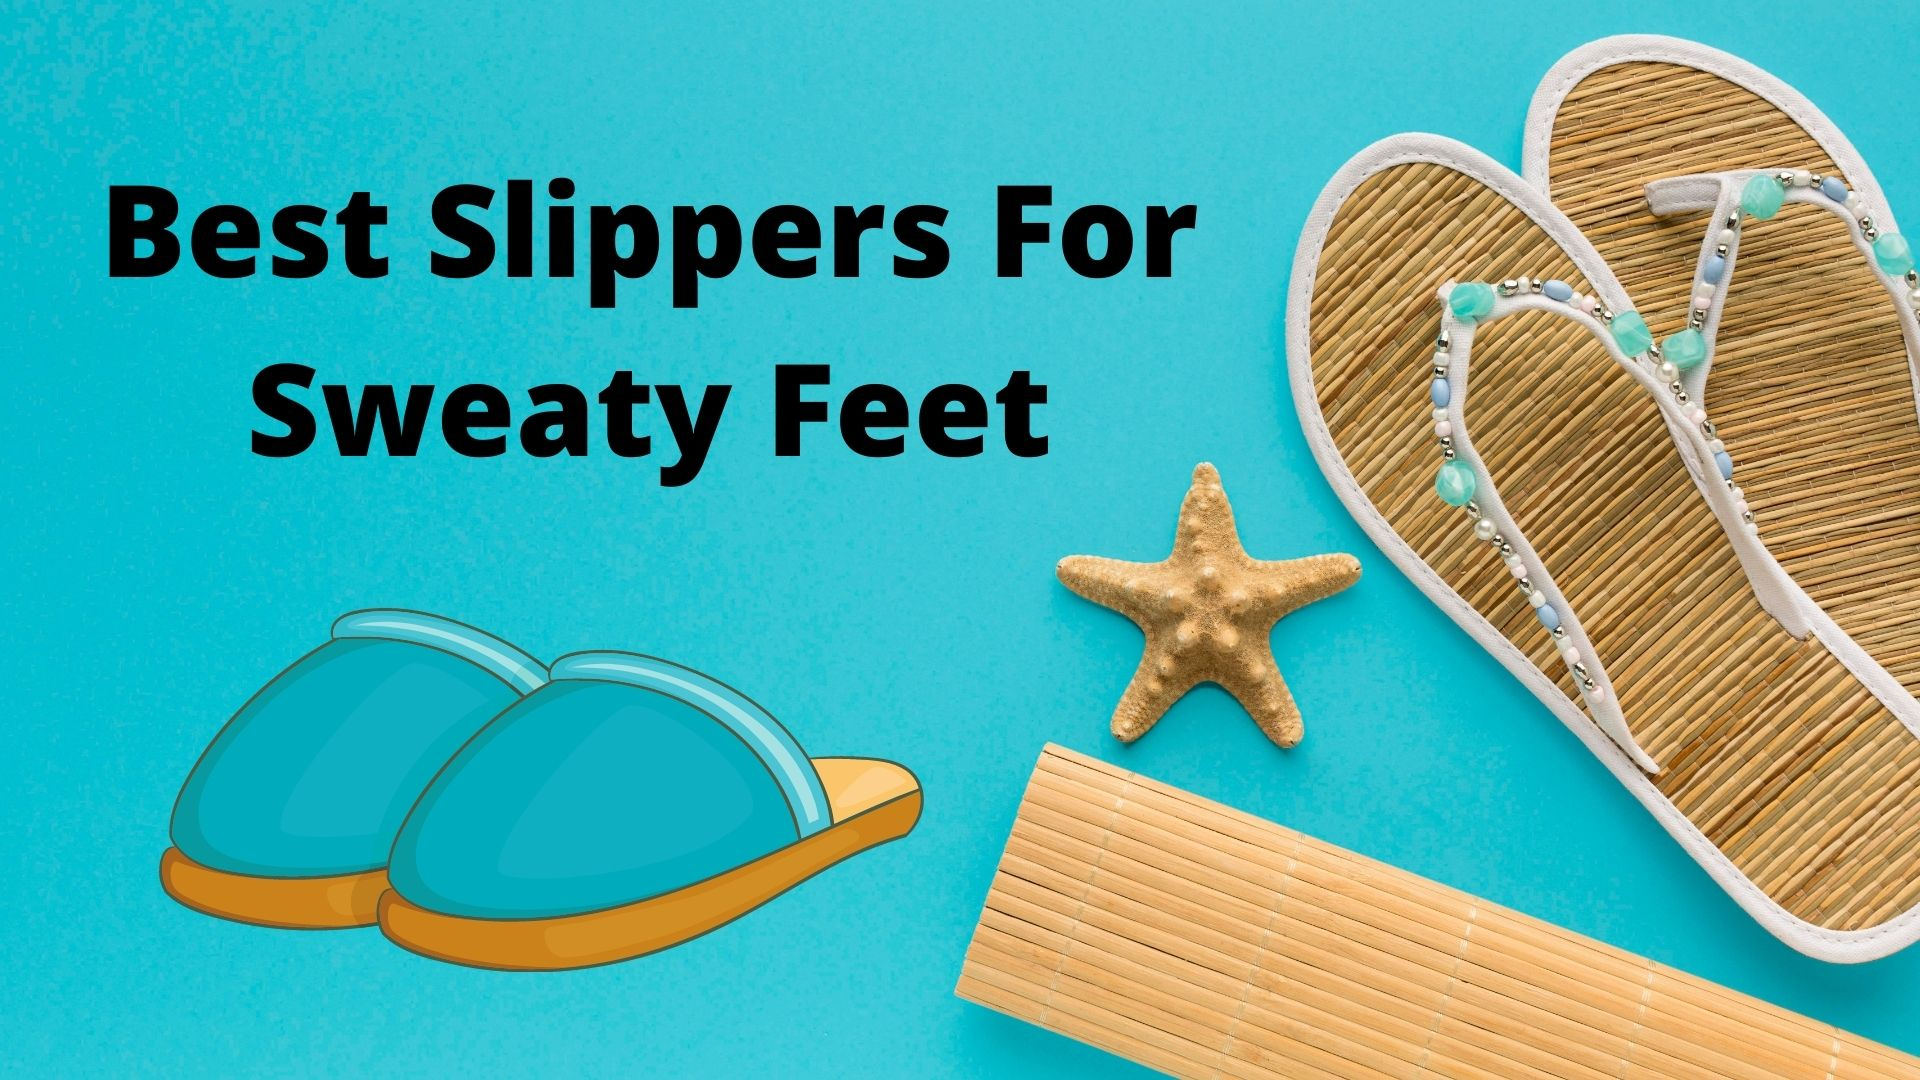 Best Slippers For Sweaty Feet 2021 Are So Famous – But Why?